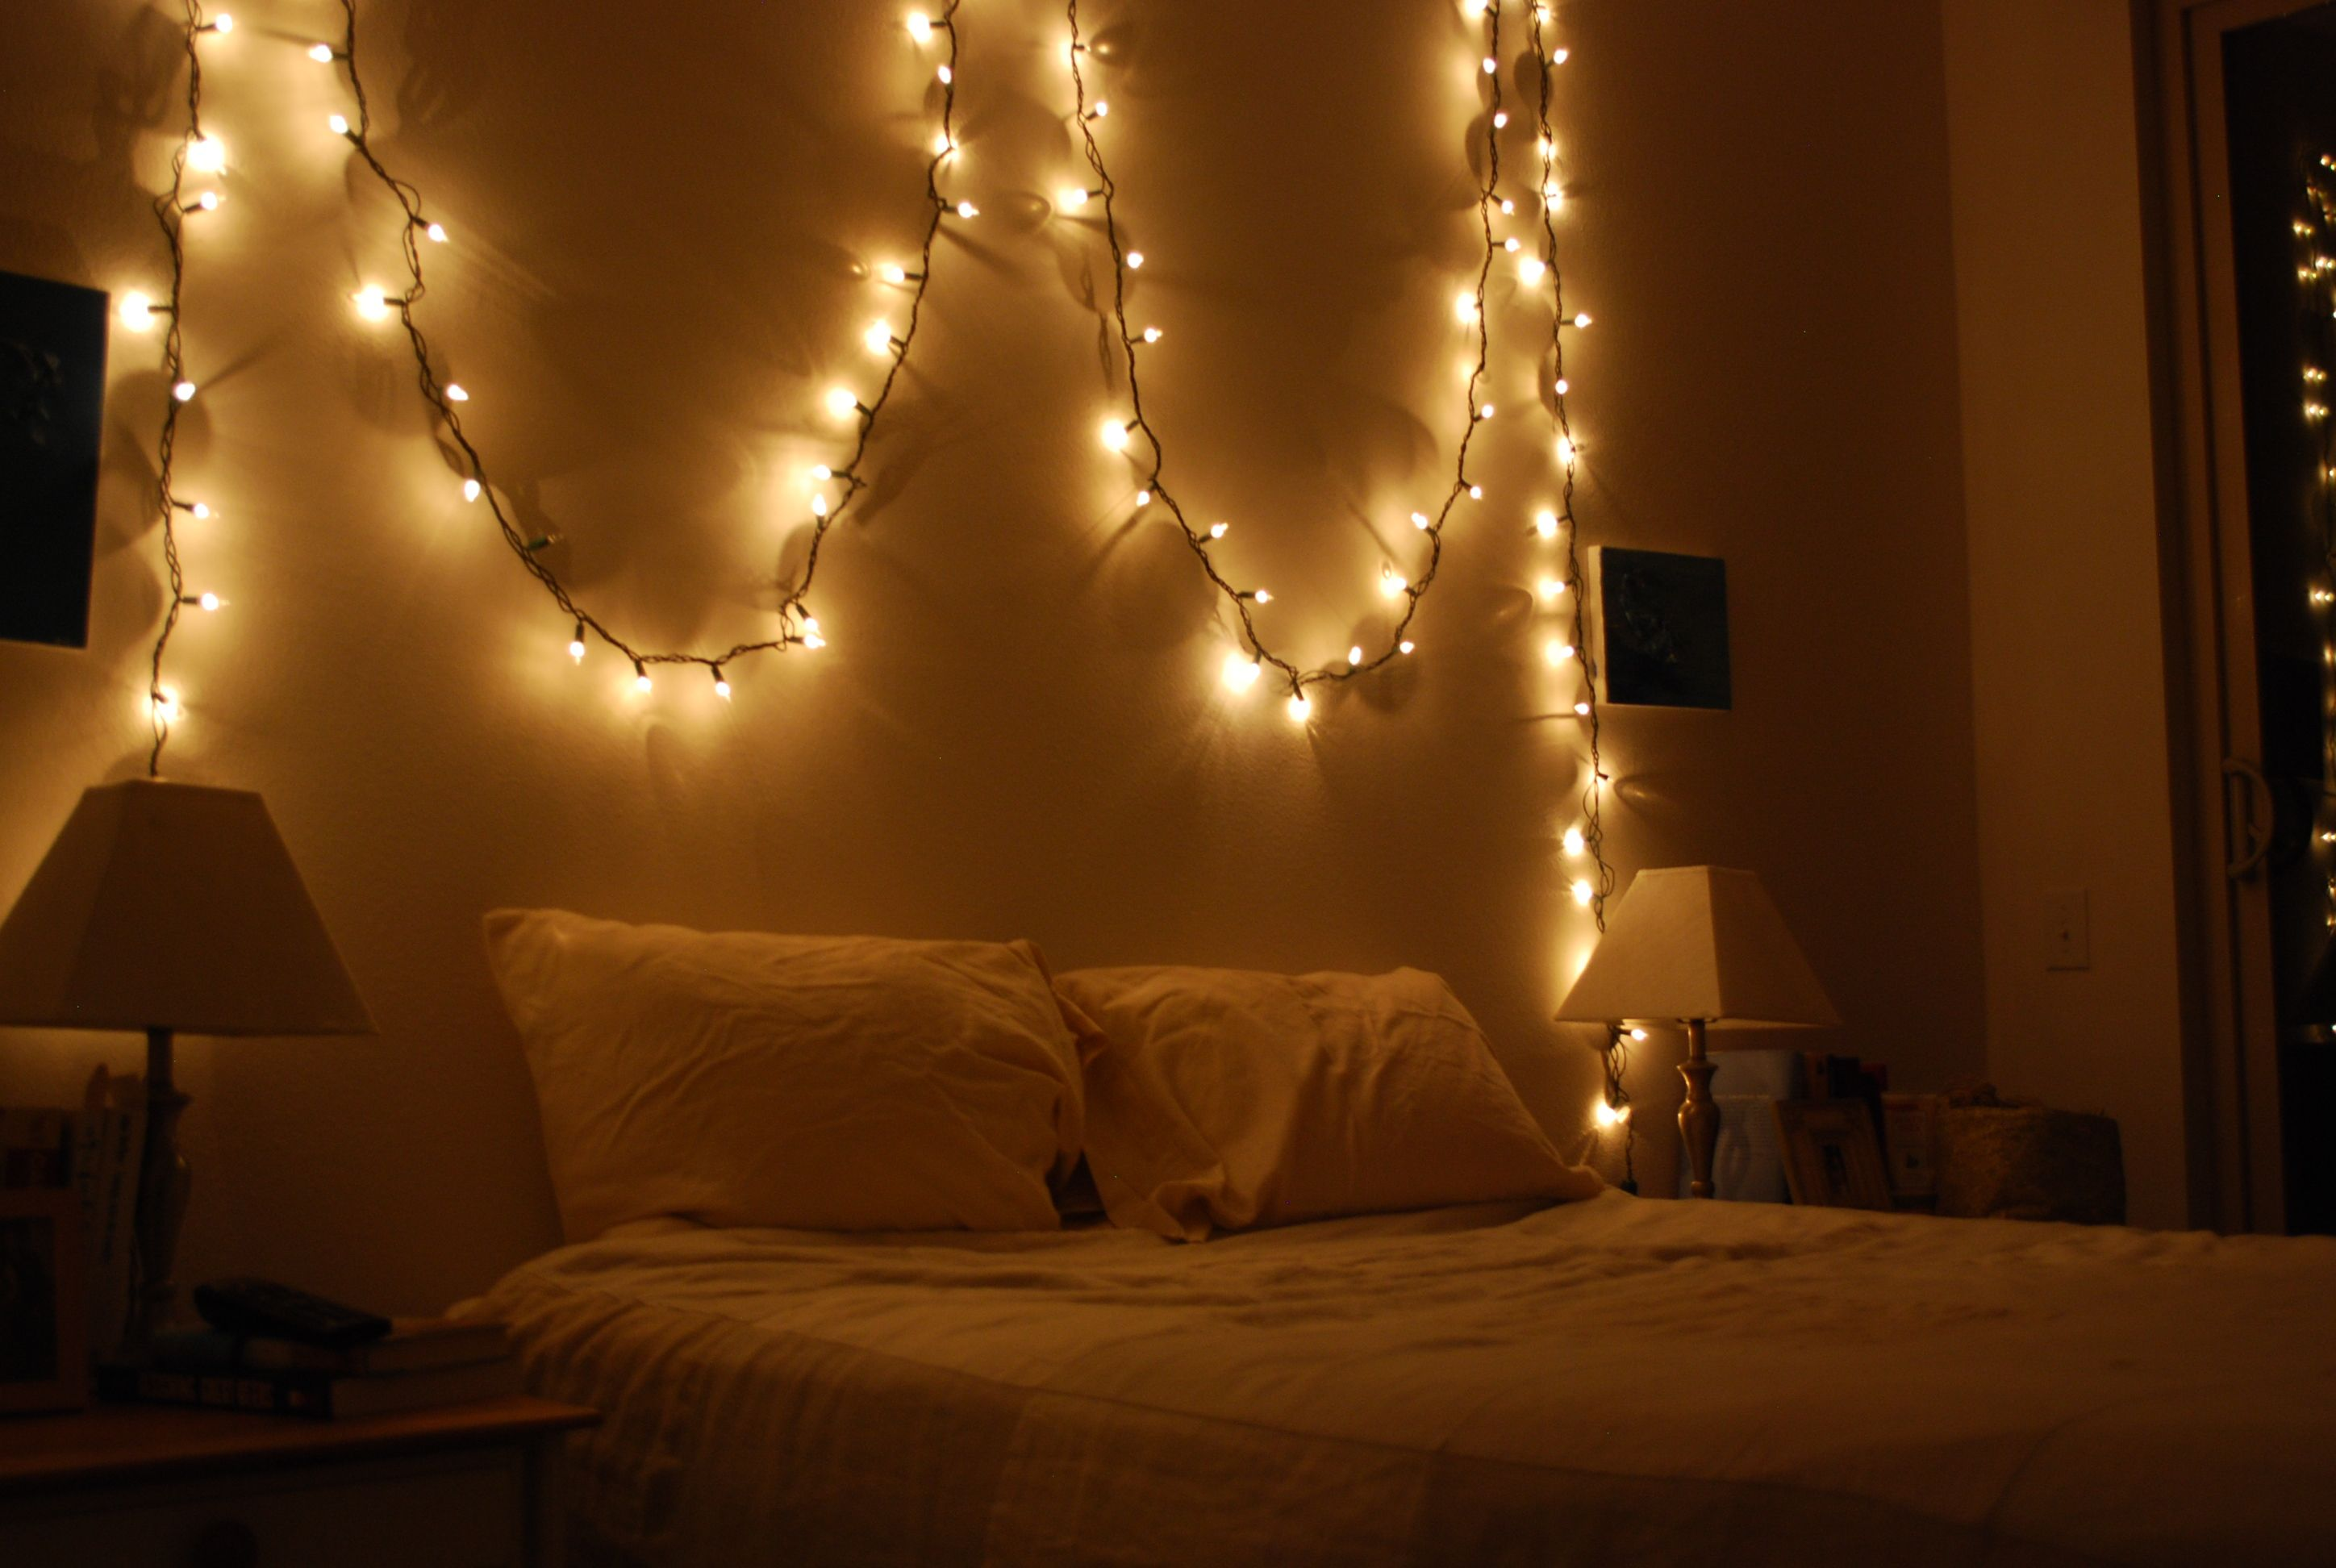 Bedroom Ideas With Christmas Lights Christmas Lights In Bedroom